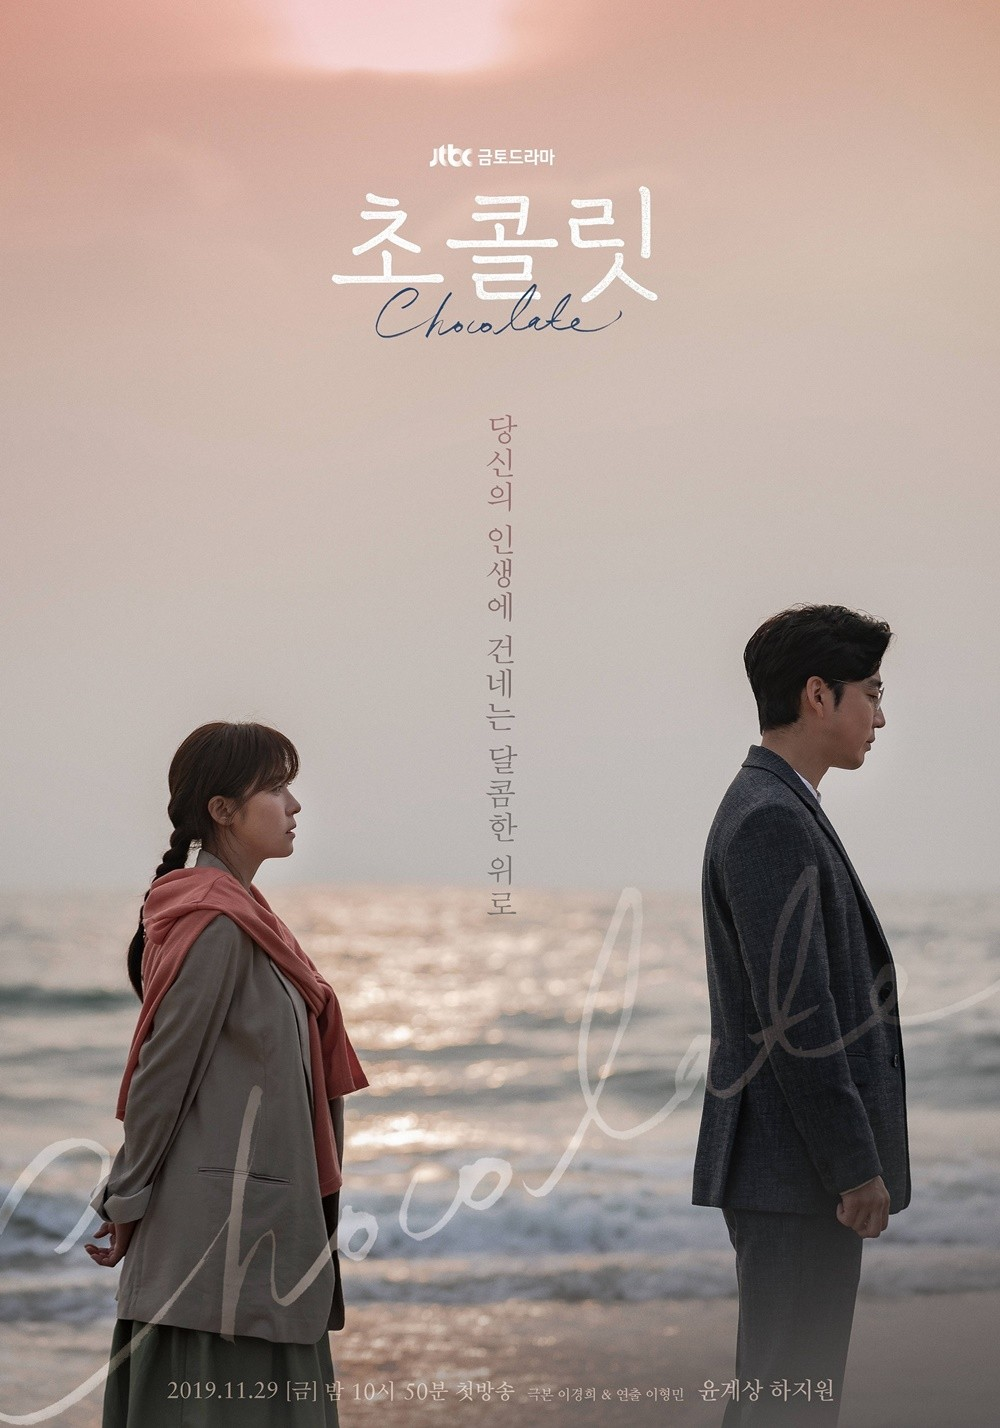 """<p> 'Chocolate' Yoon Kye-Sang and Ha Dark is the sensitivity of the human marshmallow back, a Special Norman Foster up to Vail, and was taken off.</p><p>21, JTBCs new Morning drama, 'Chocolate' side is Yoon Kye-Sang and Ha JI-Won of the Special Norman Foster and unveiled.</p><p>With the main Norman Foster the moment as melting tingles were picked up, the Special Norman Foster is Yoon Kye-Sang and Ha JI-synergy of debt within a unique atmosphere feeling to it. Only two some space from each other, fixing his gaze on that. Shake up all the way to a Eyes on several emotions, they work ordinary.</p><p>Another Norman Foster belongs to the two person is Golden with a broken on the beach are standing together. Think submerged in the impression of the back to stare to the support of the child in the eyes, two people drawn out romance in the questions better.</p><p>This is related to 'Chocolate' with the """"emotion line to fine to build up Yoon Kye-Sang and Ha The Breath of the description is not needed. Together you would expect more to transpire that the two actors encounter results different sensibility into the minds of the viewers and dark melody that is""""said.</p><p>'Chocolate'is a scalpel like cold brain neurosurgeons this steel(Yoon Kye-Sang)and as food people, heart of the fire, like a warm chef door car pool(not supported)in this hospice ward in the reunion, after cooking through each other to heal the wounds of a human marshmallow to it. 'My country' as a follow-up coming 29 the first broadcast.</p>"""